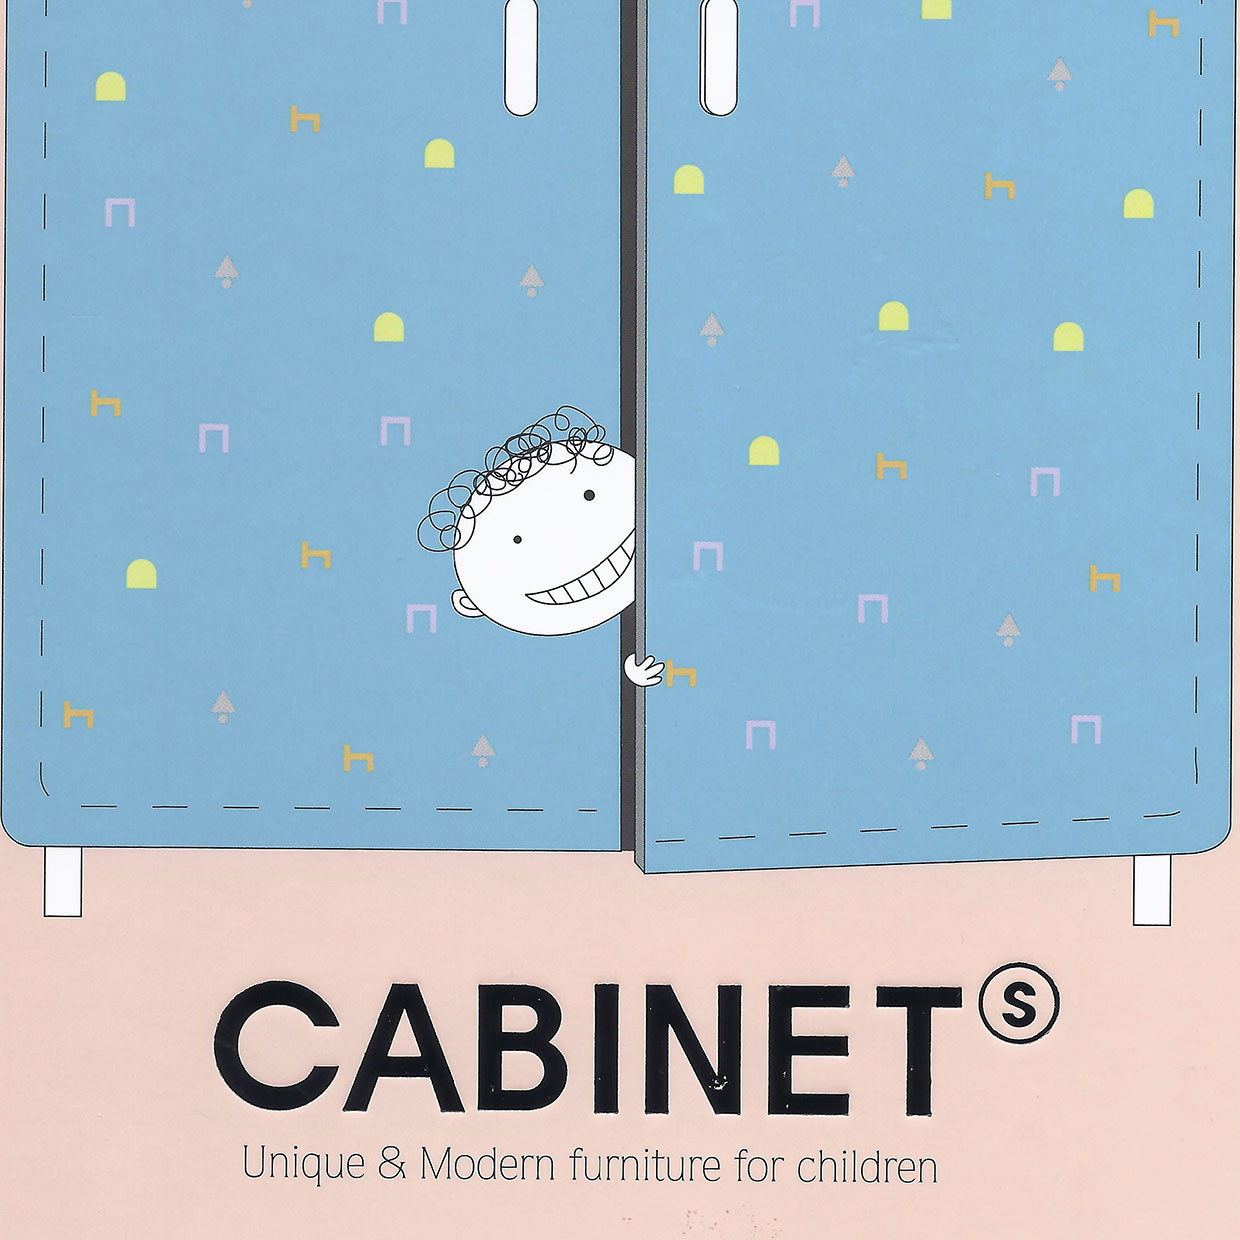 151216-cabinet_unique-modern-furniture-for-kids_1